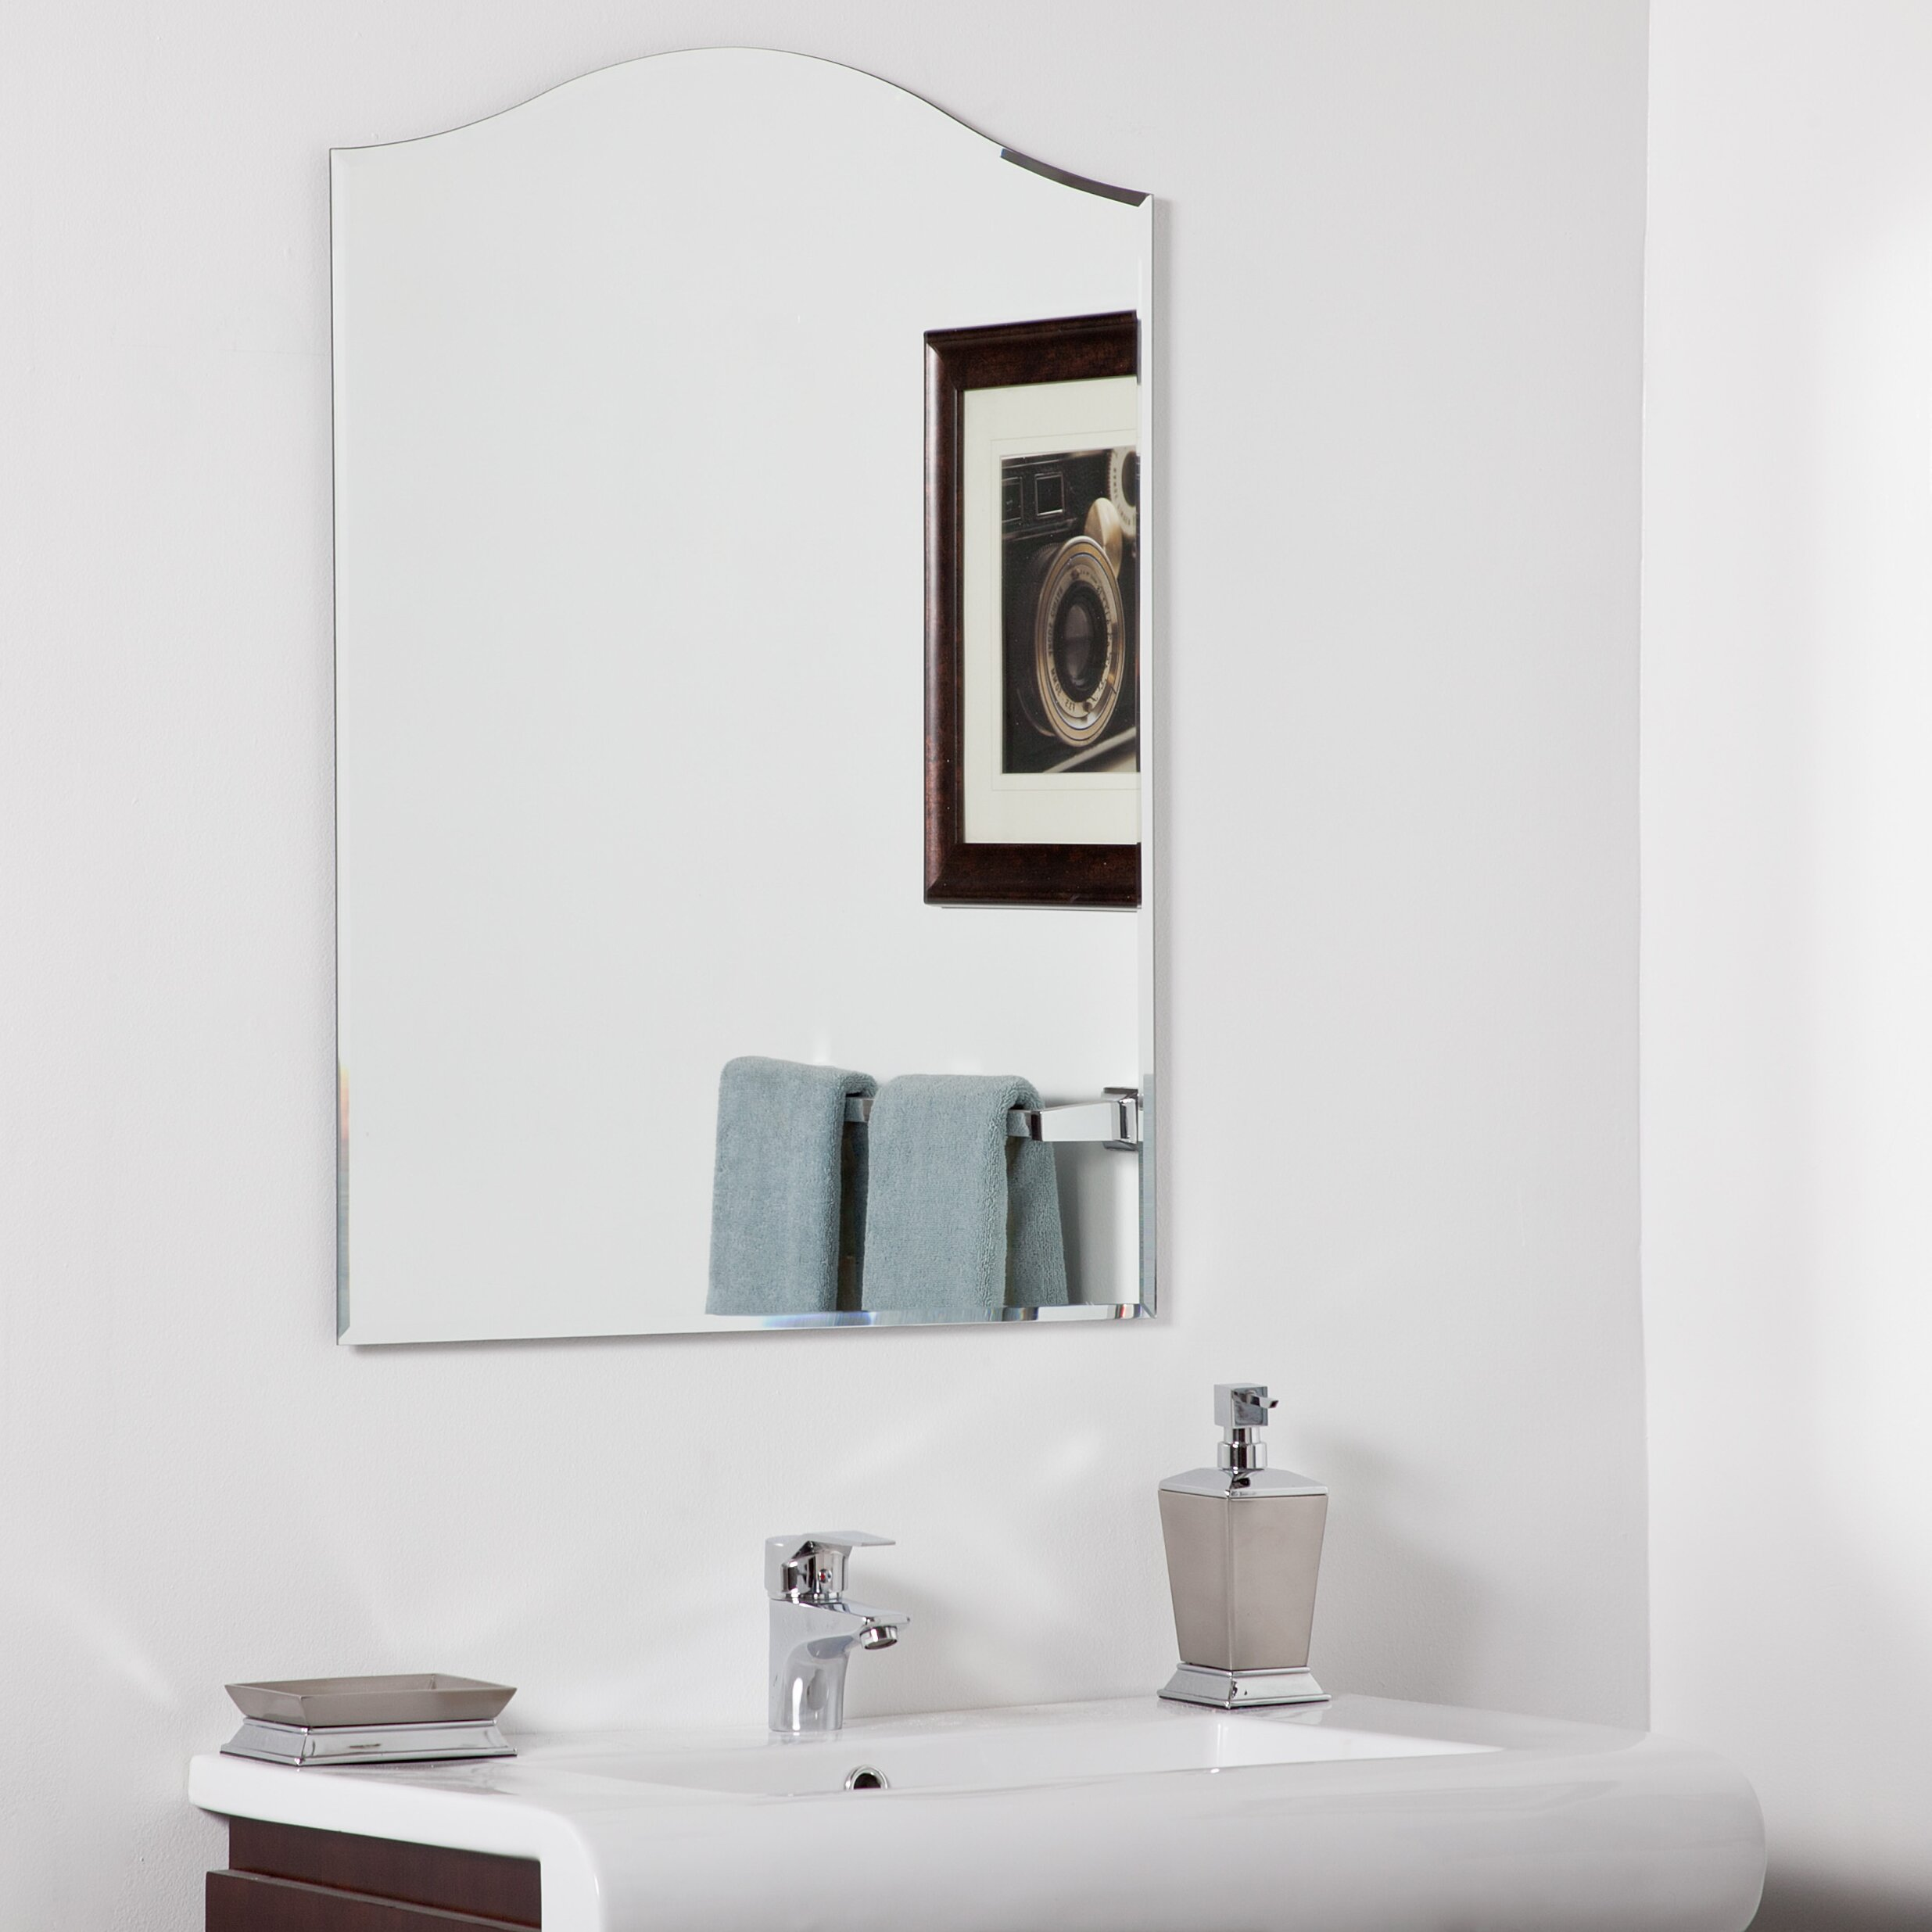 marvelous decor wonderland amelia modern bathroom mirror | Decor Wonderland Amelia Modern Wall Mirror & Reviews | Wayfair